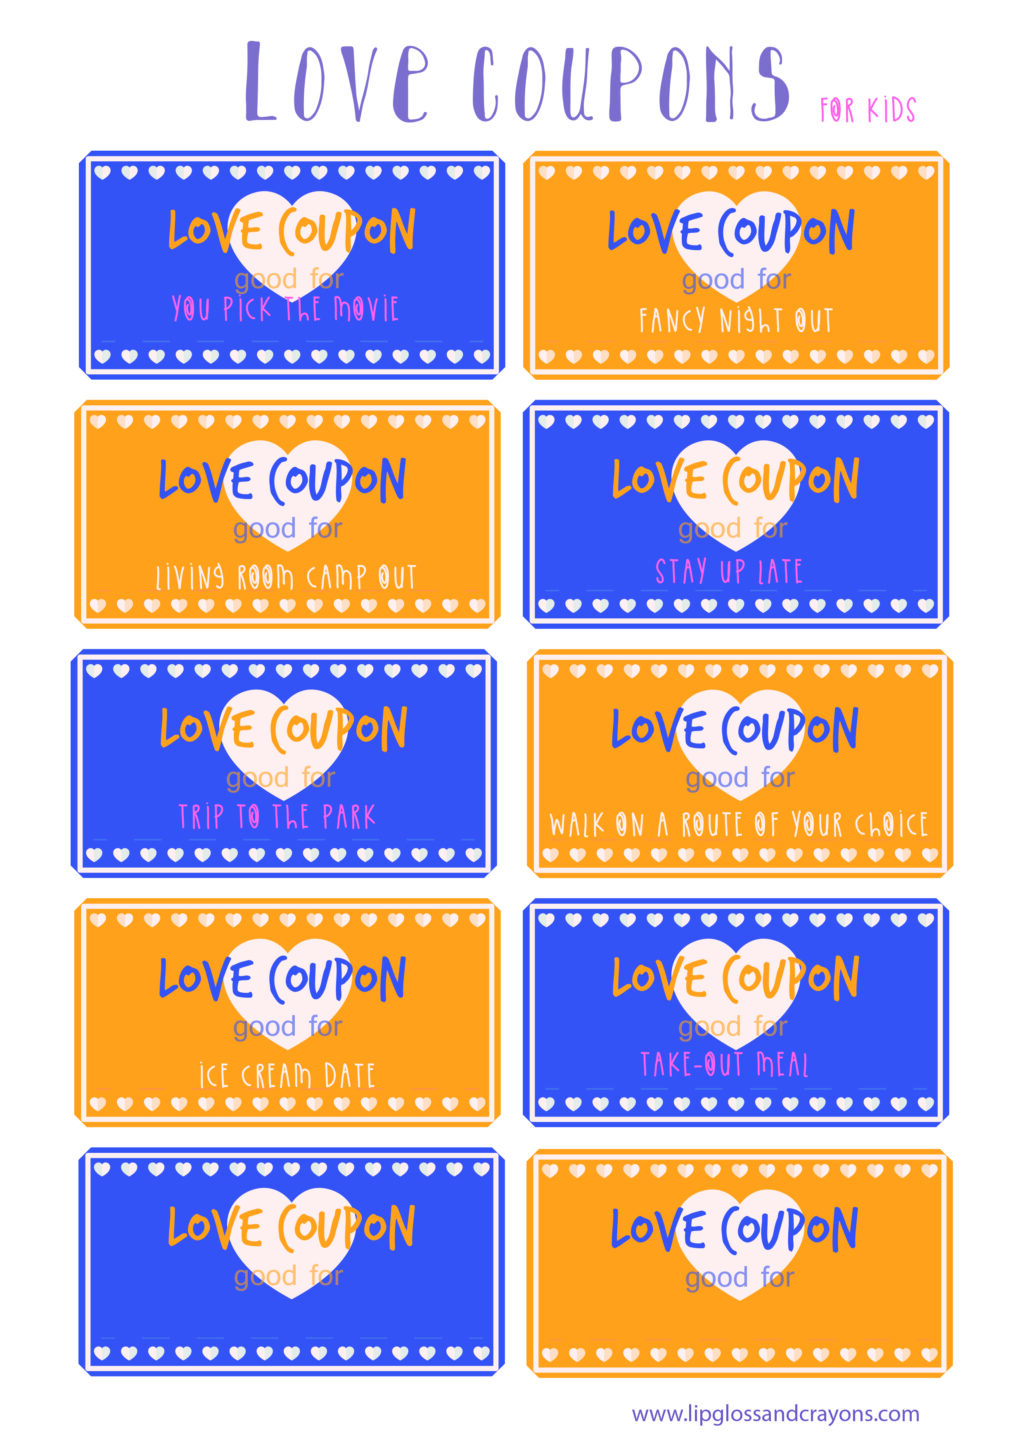 Love Coupons For Kids Lipgloss And Crayons